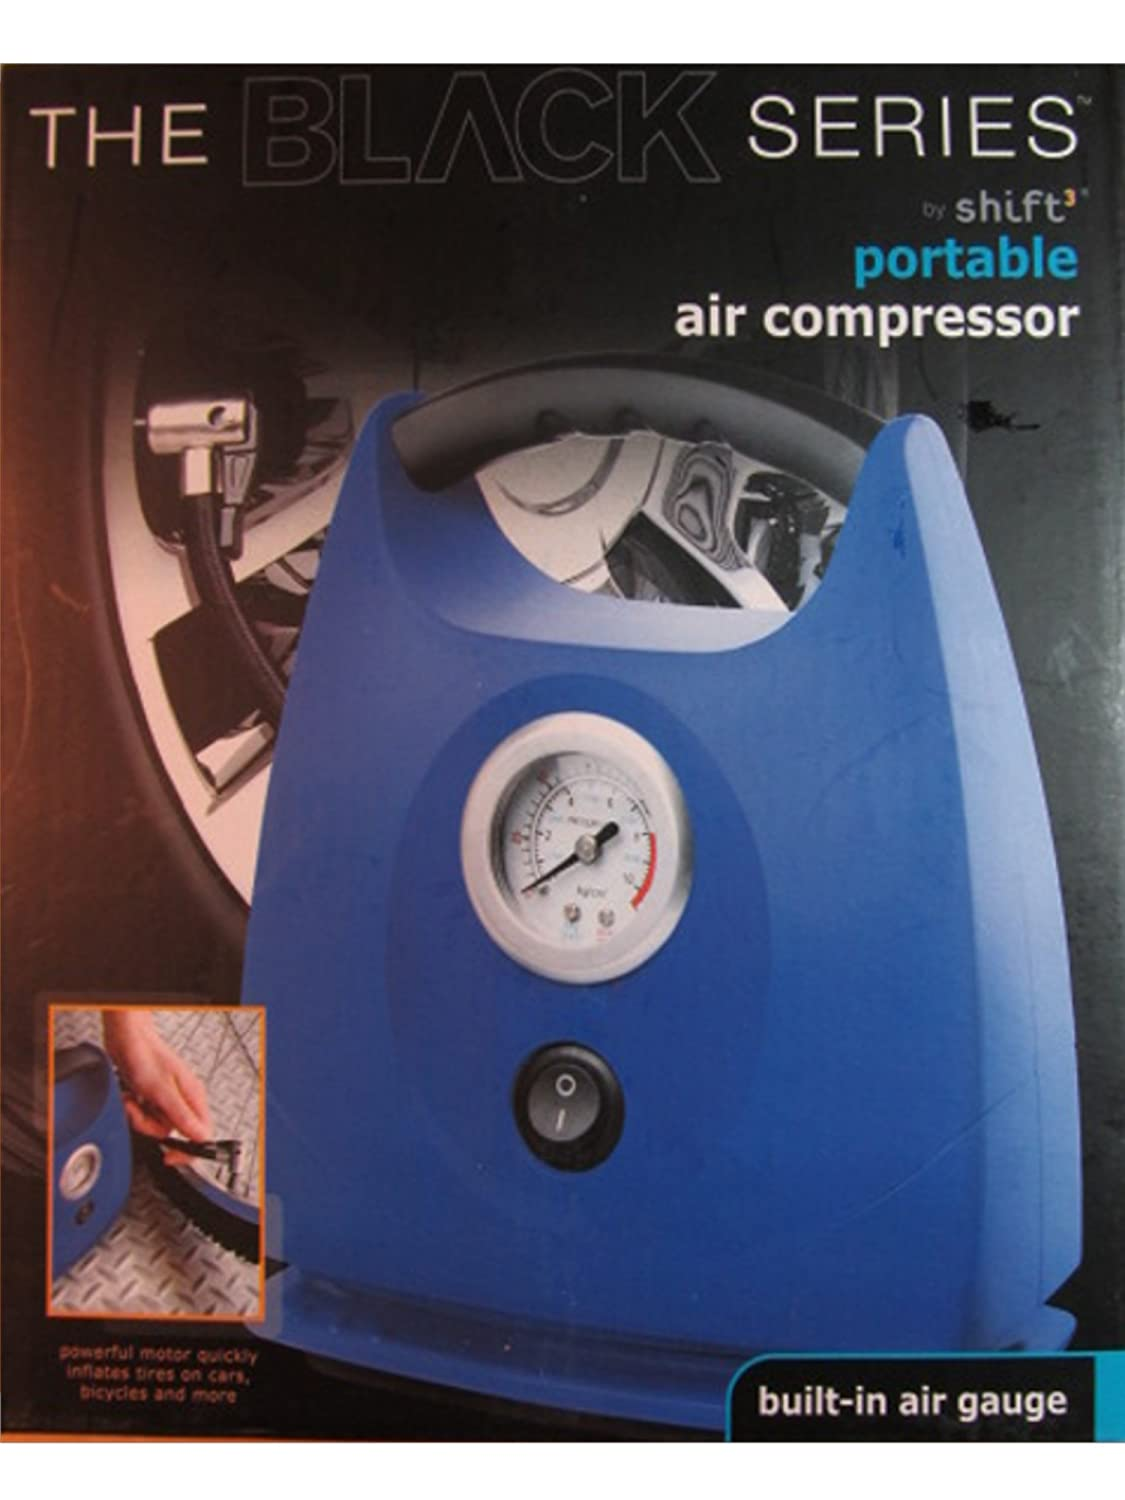 The Black Series Portable Air Compressor Shift3 BS-1003003